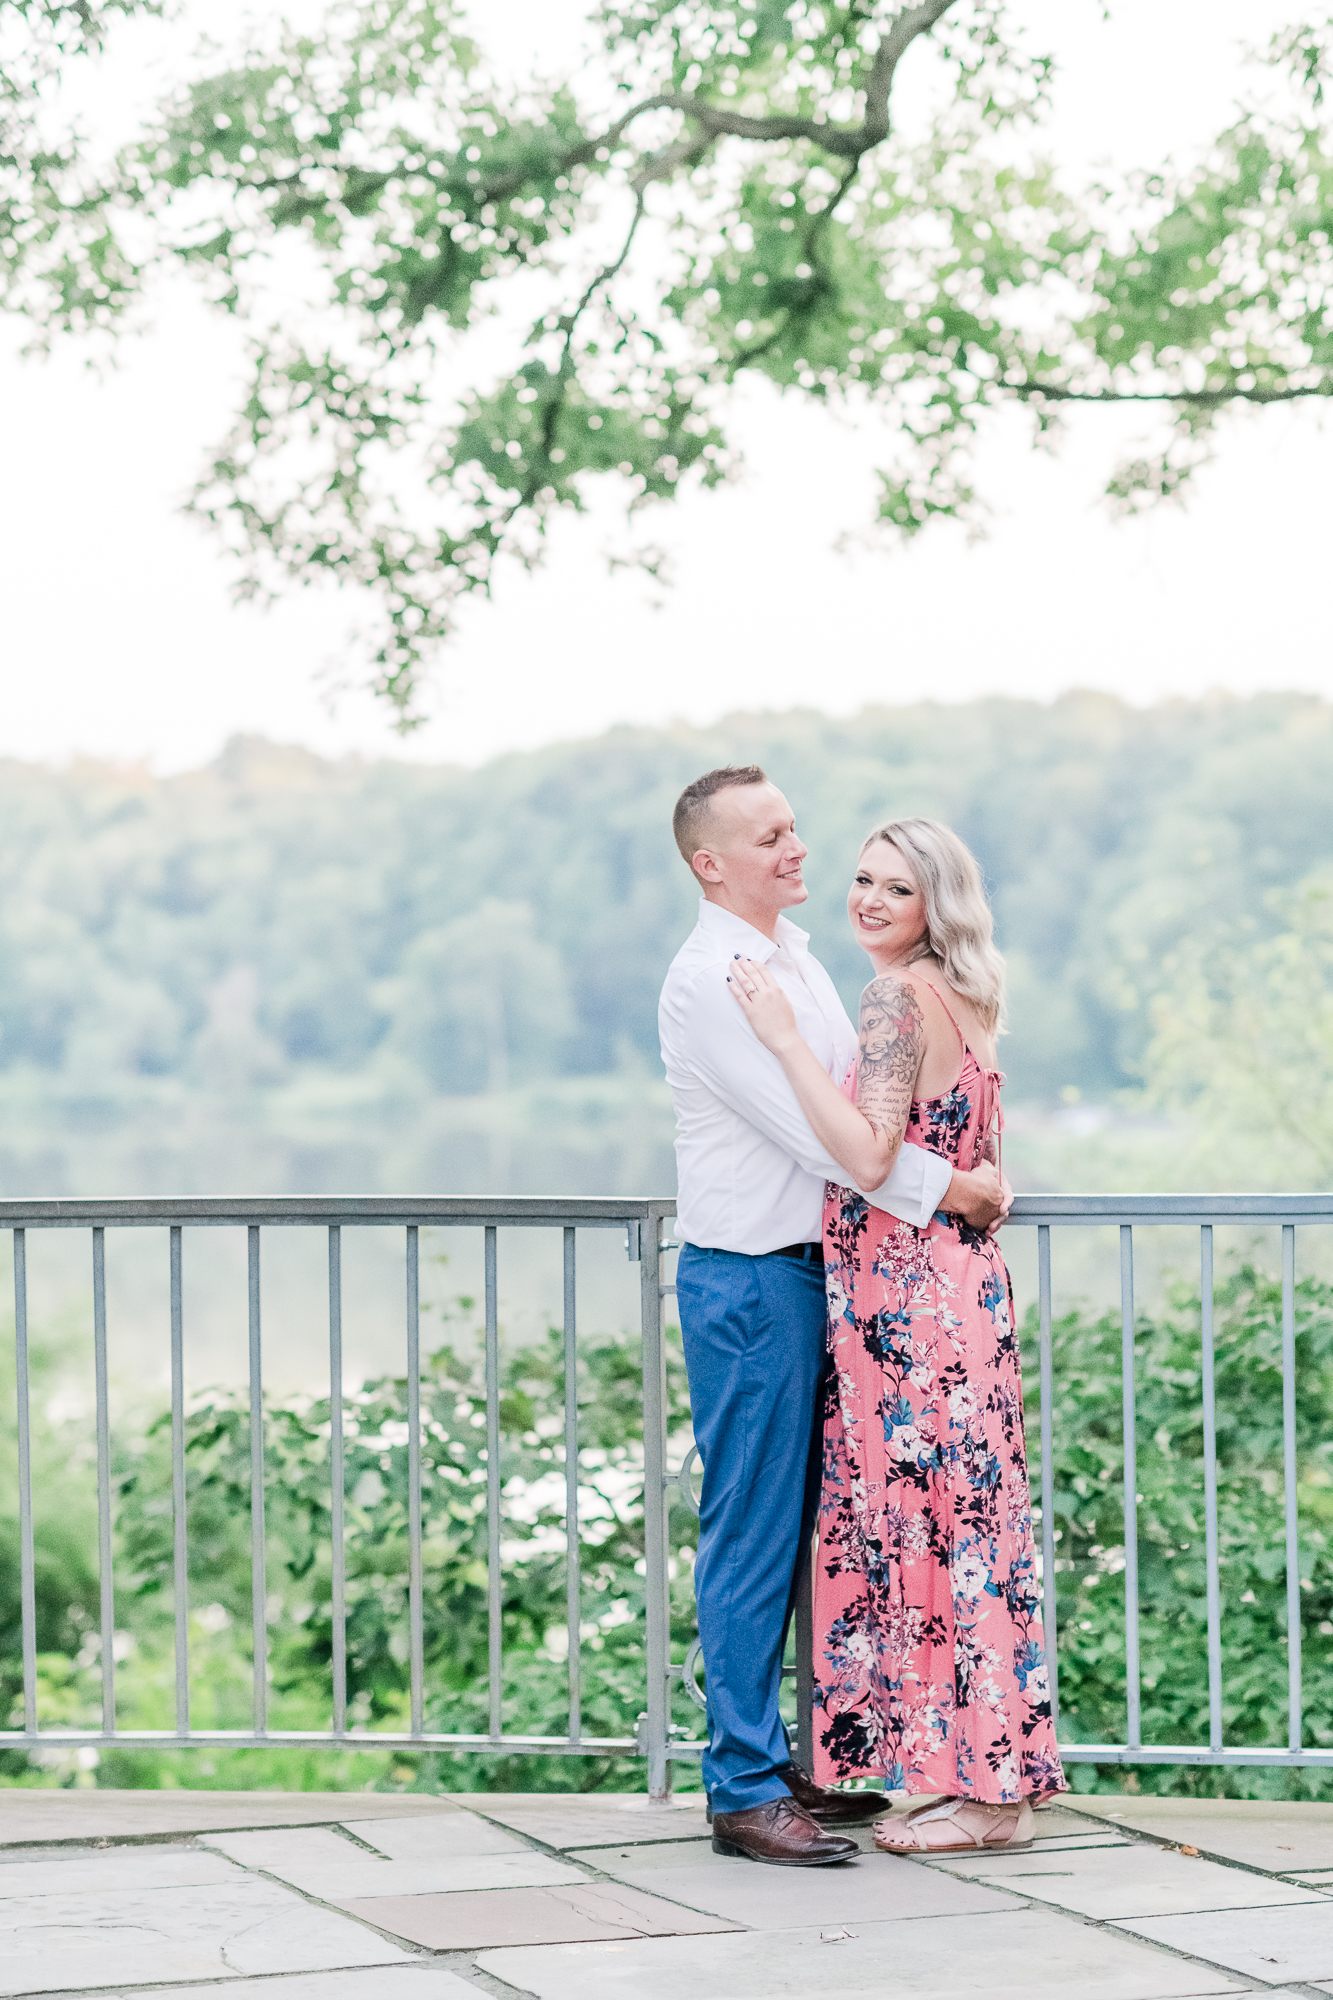 Kristina+Matt_Engagement Session_Mill Creek Park_Youngstown_Ohio-26.jpg